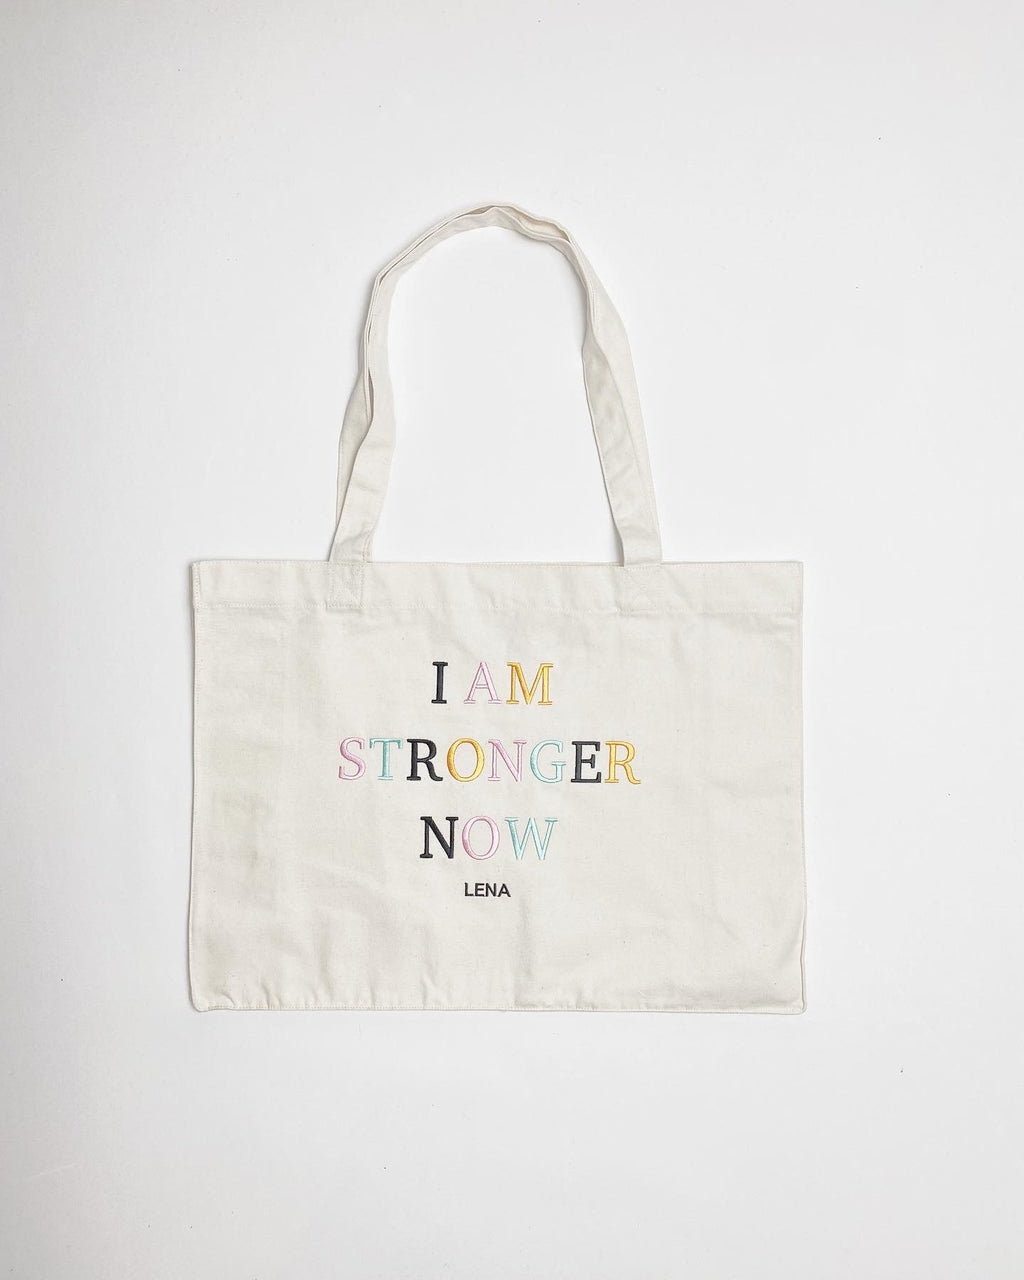 Lena - '2021' I AM STRONGER NOW' Bag